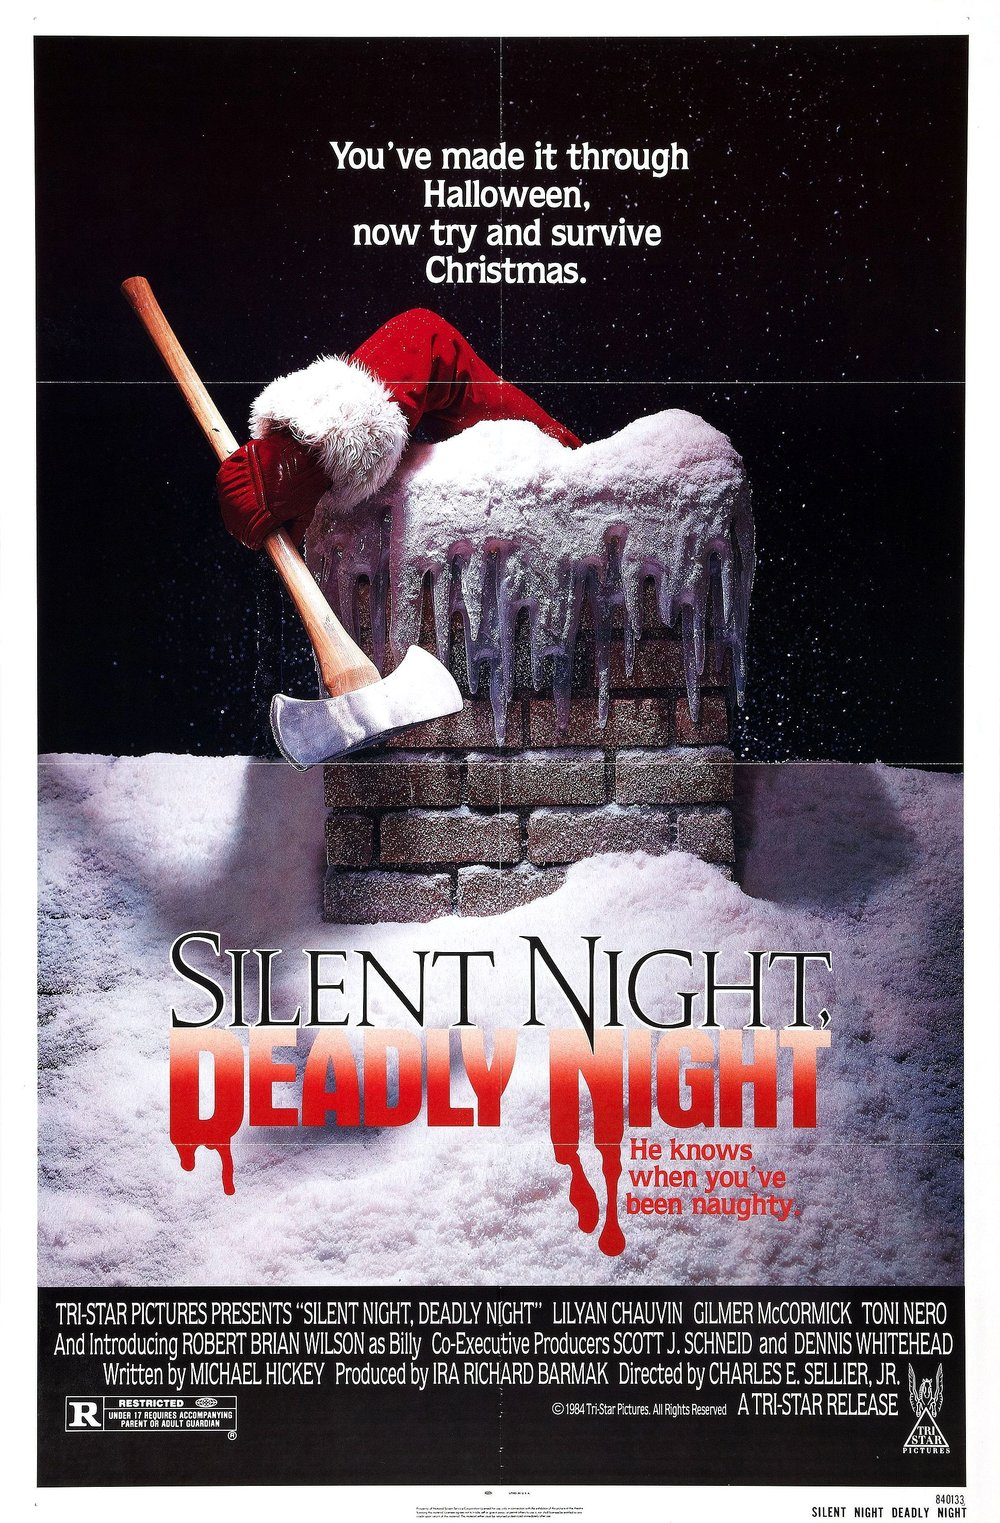 12. Silent Night, Deadly Night (1984) - A shinning holiday slasher that focuses on the story of our killer and not his victims. A dark origin story of a tortured boy that turns to a delightfully fun and inventive killer Santa. It's so good it almost makes us sad we can only watch it every Christmas.